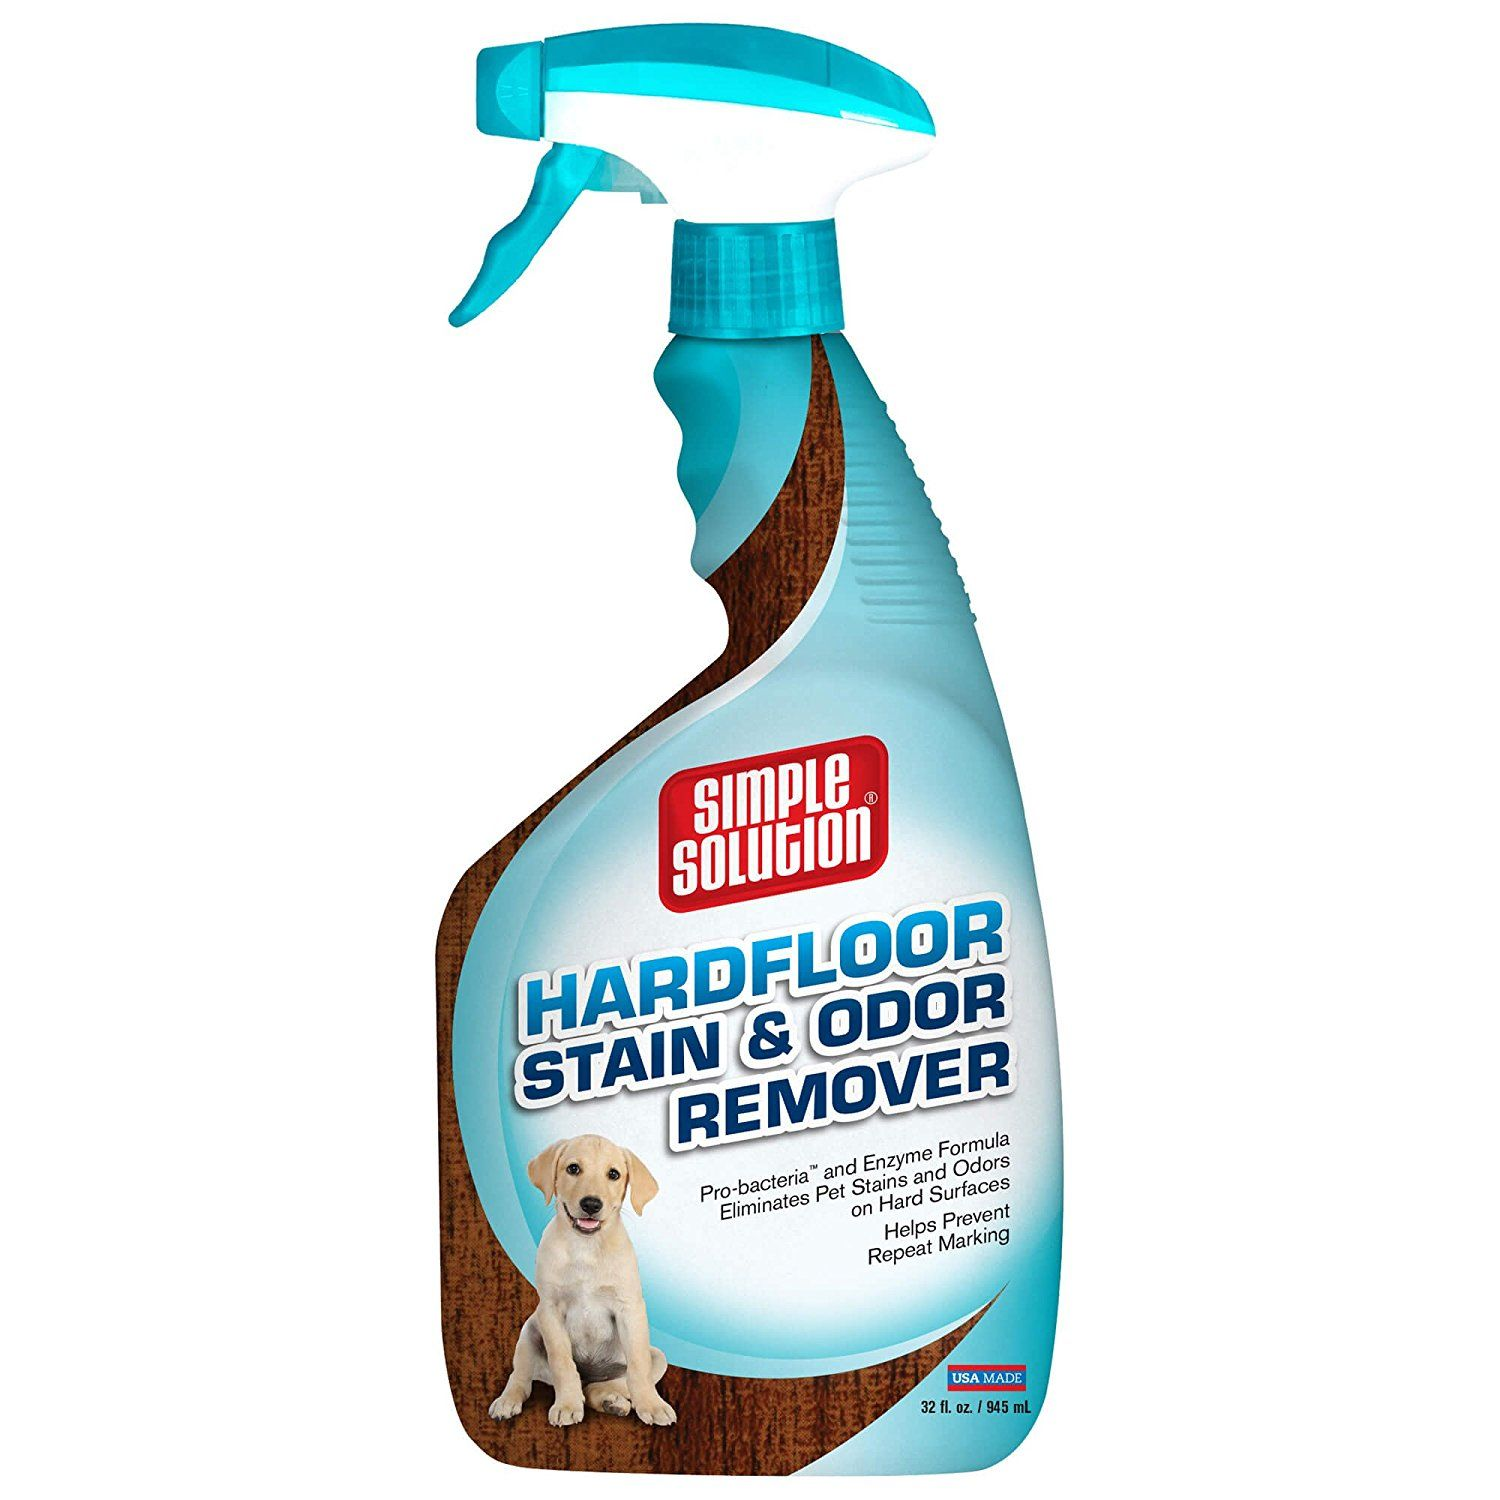 Simple Solution Hardfloors Pet Stain and Odor Remover, 32